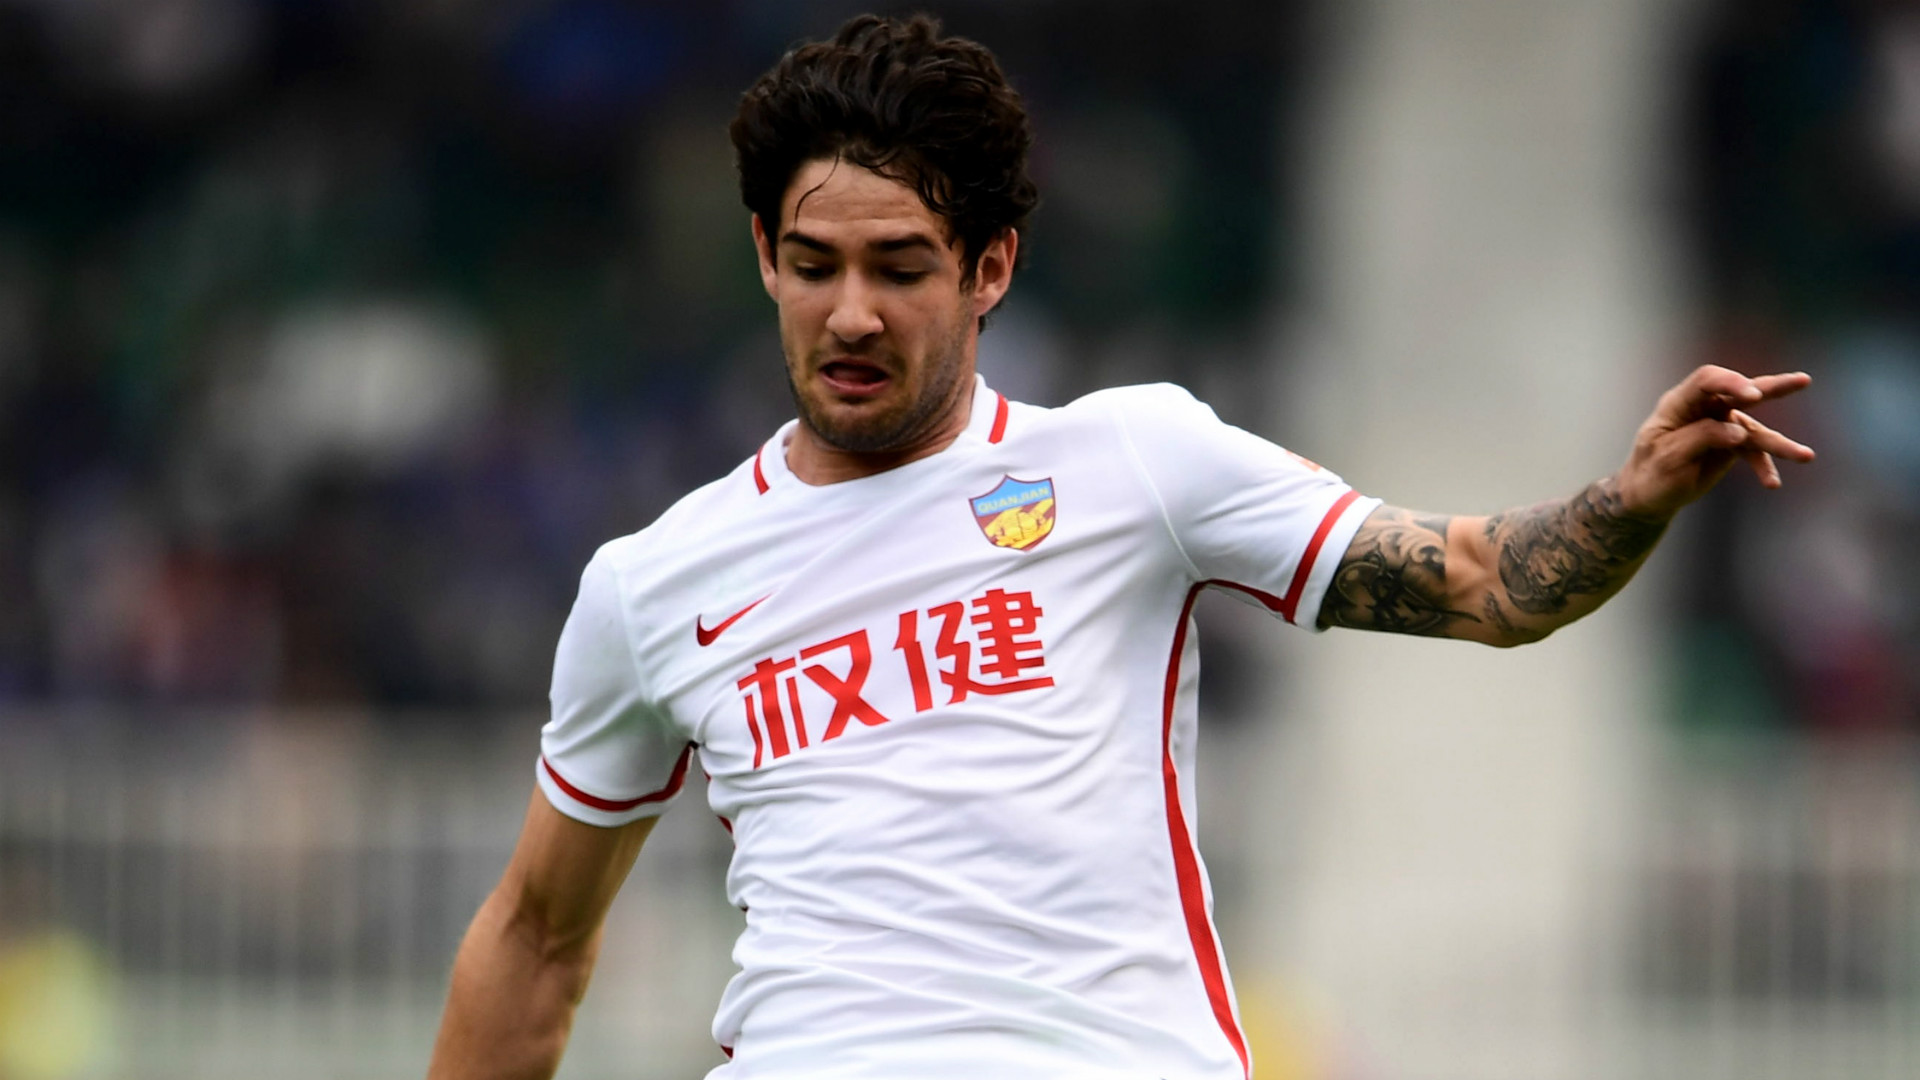 Transfer news: Pato explains Chelsea struggles & refuses to rule out AC Milan move | Goal.com